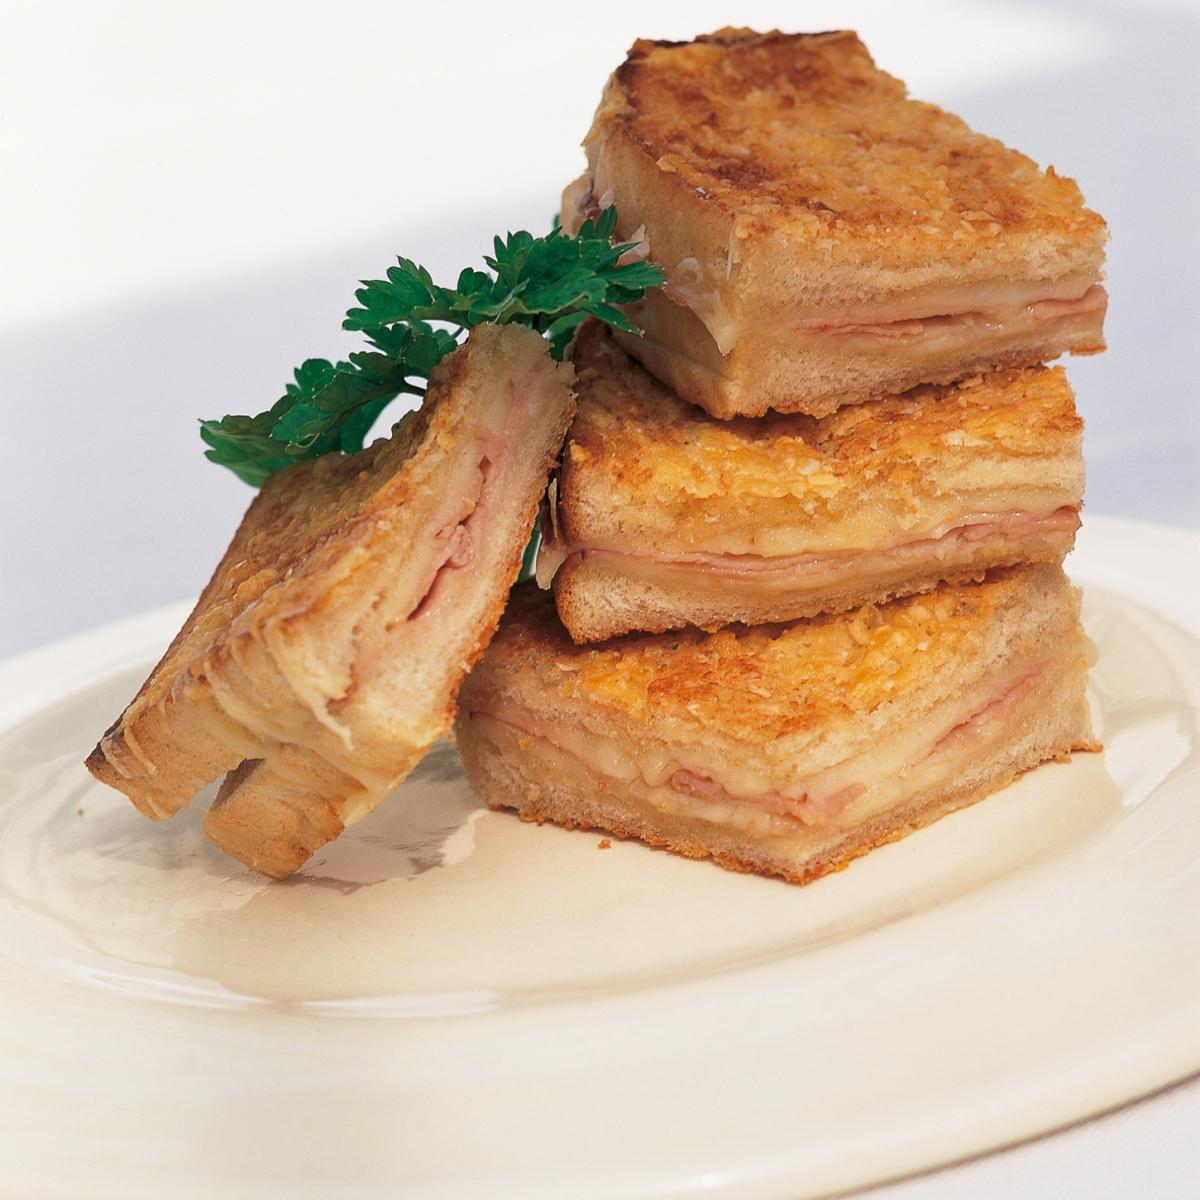 A picture of Delia's Croque Monsieur recipe